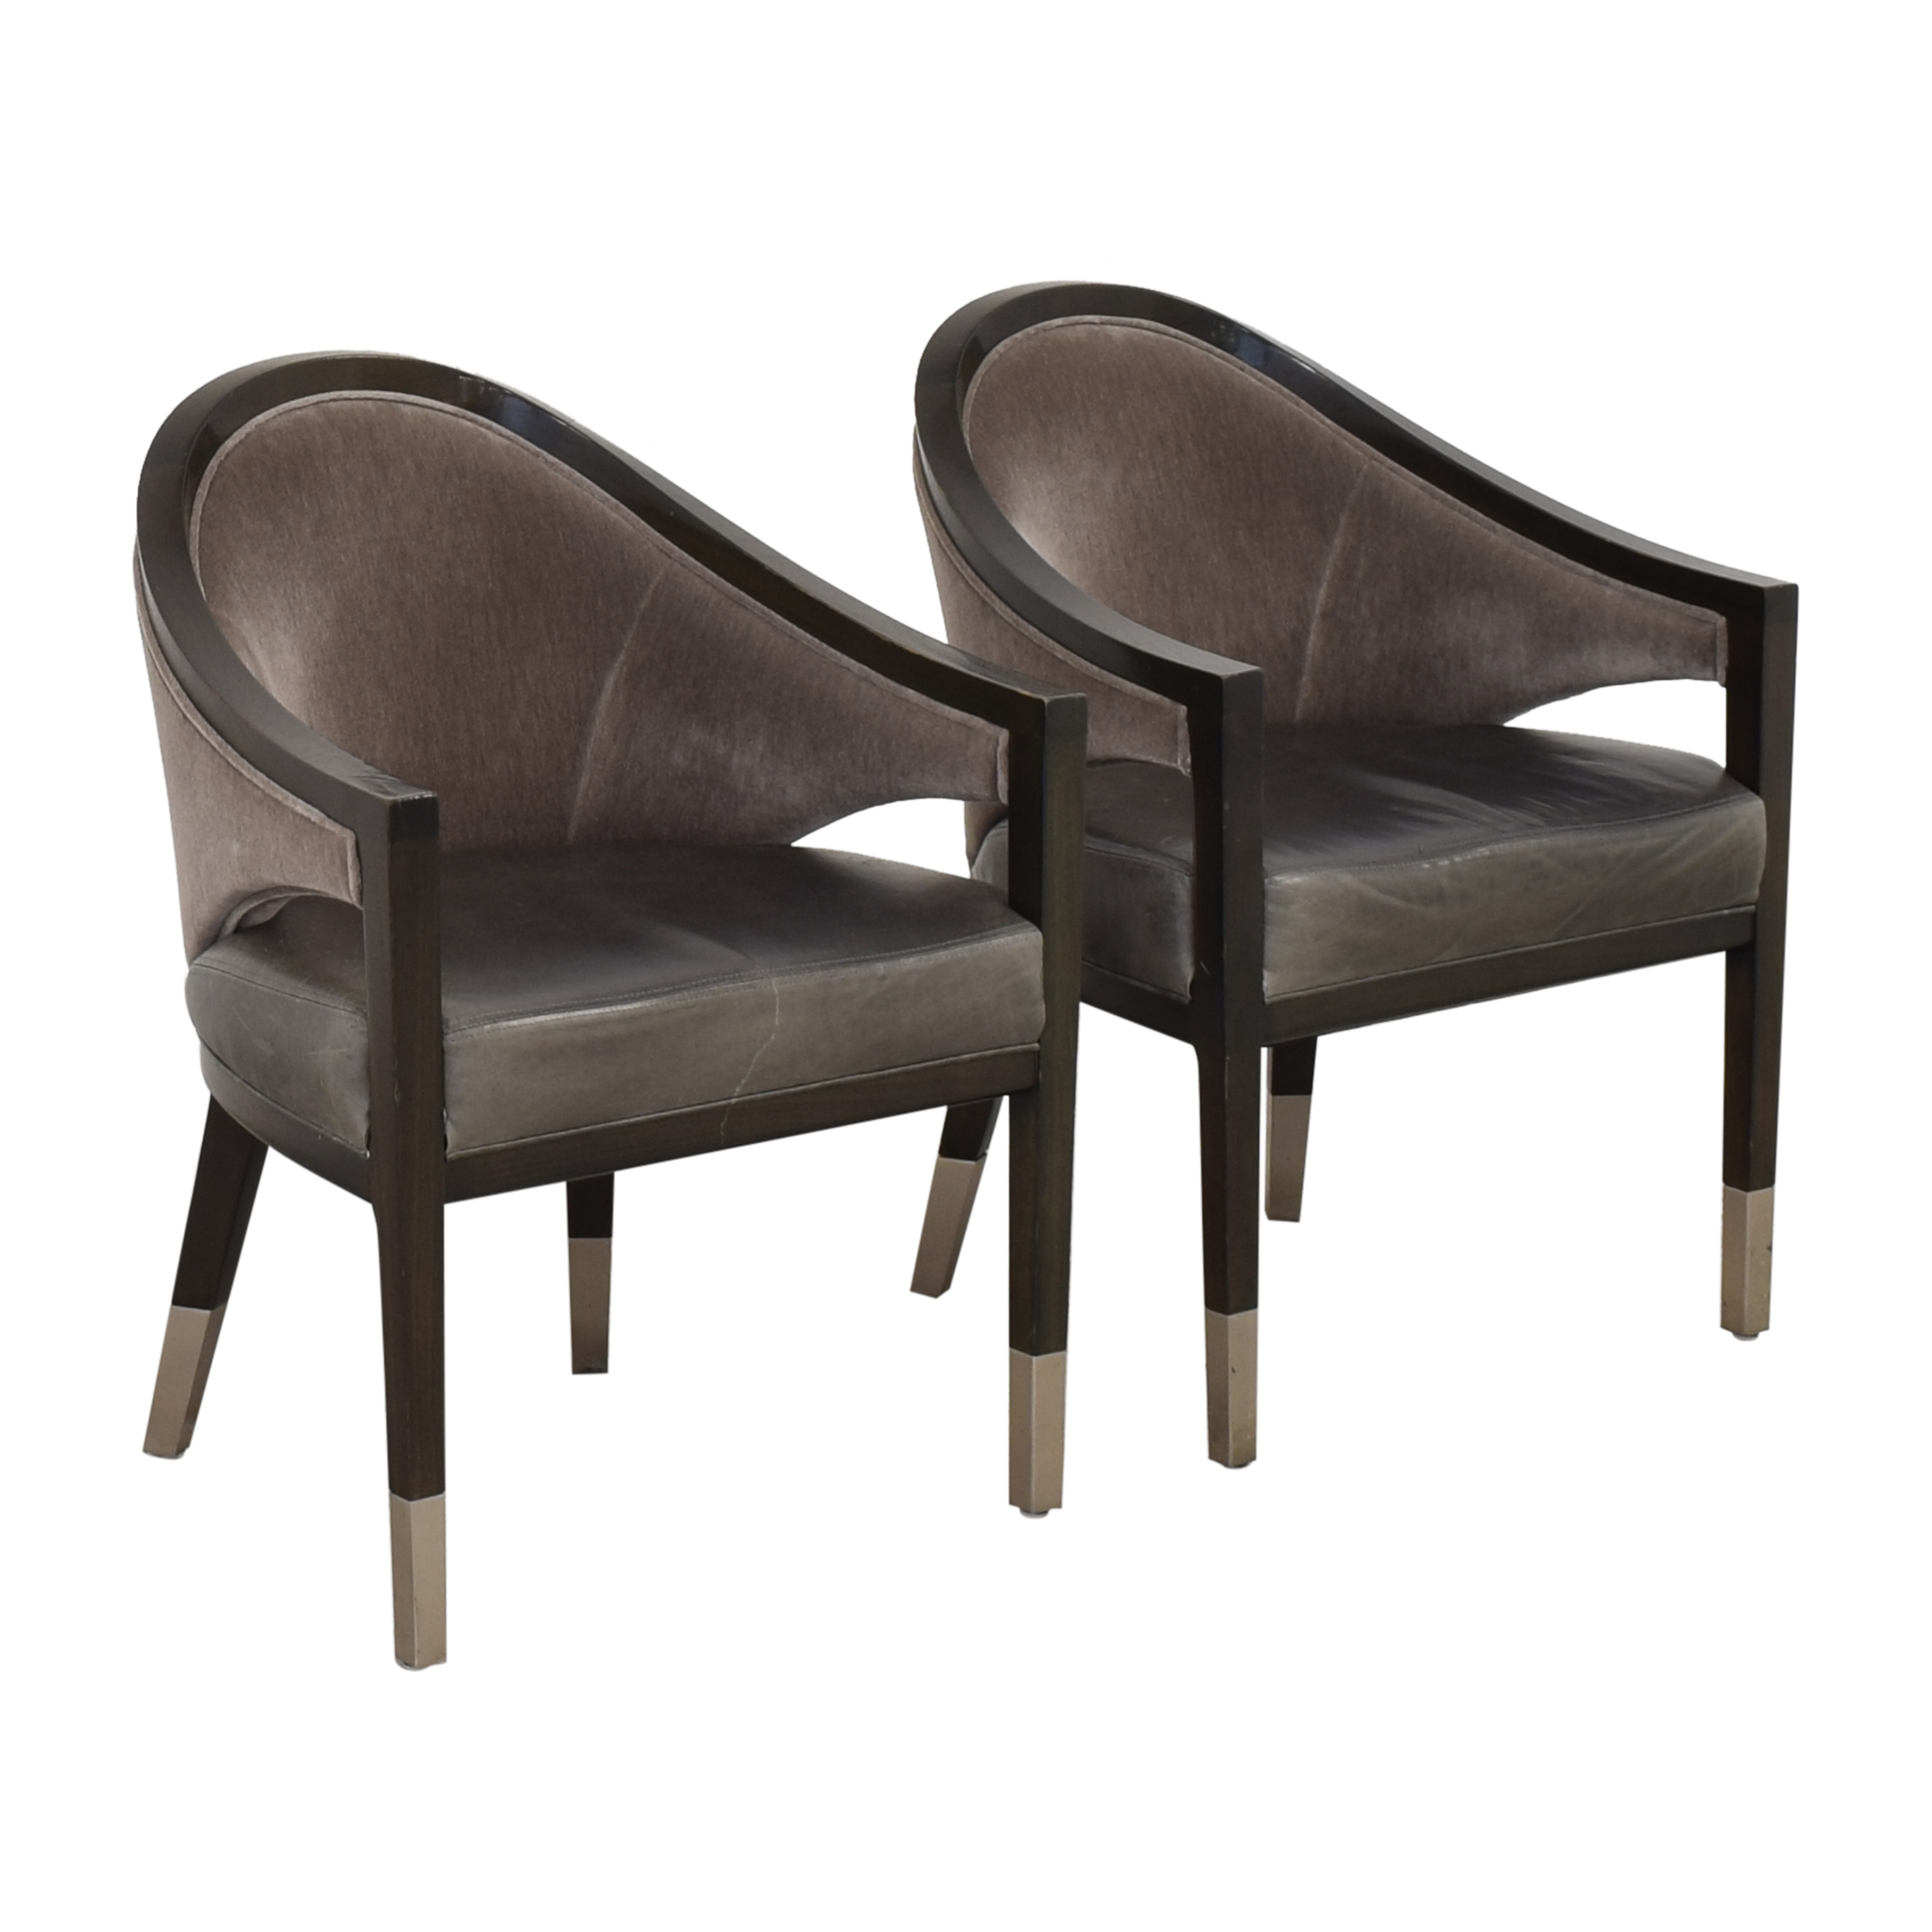 buy Allied Works Eleven Madison Park Dining Room Chairs Allied Form Works